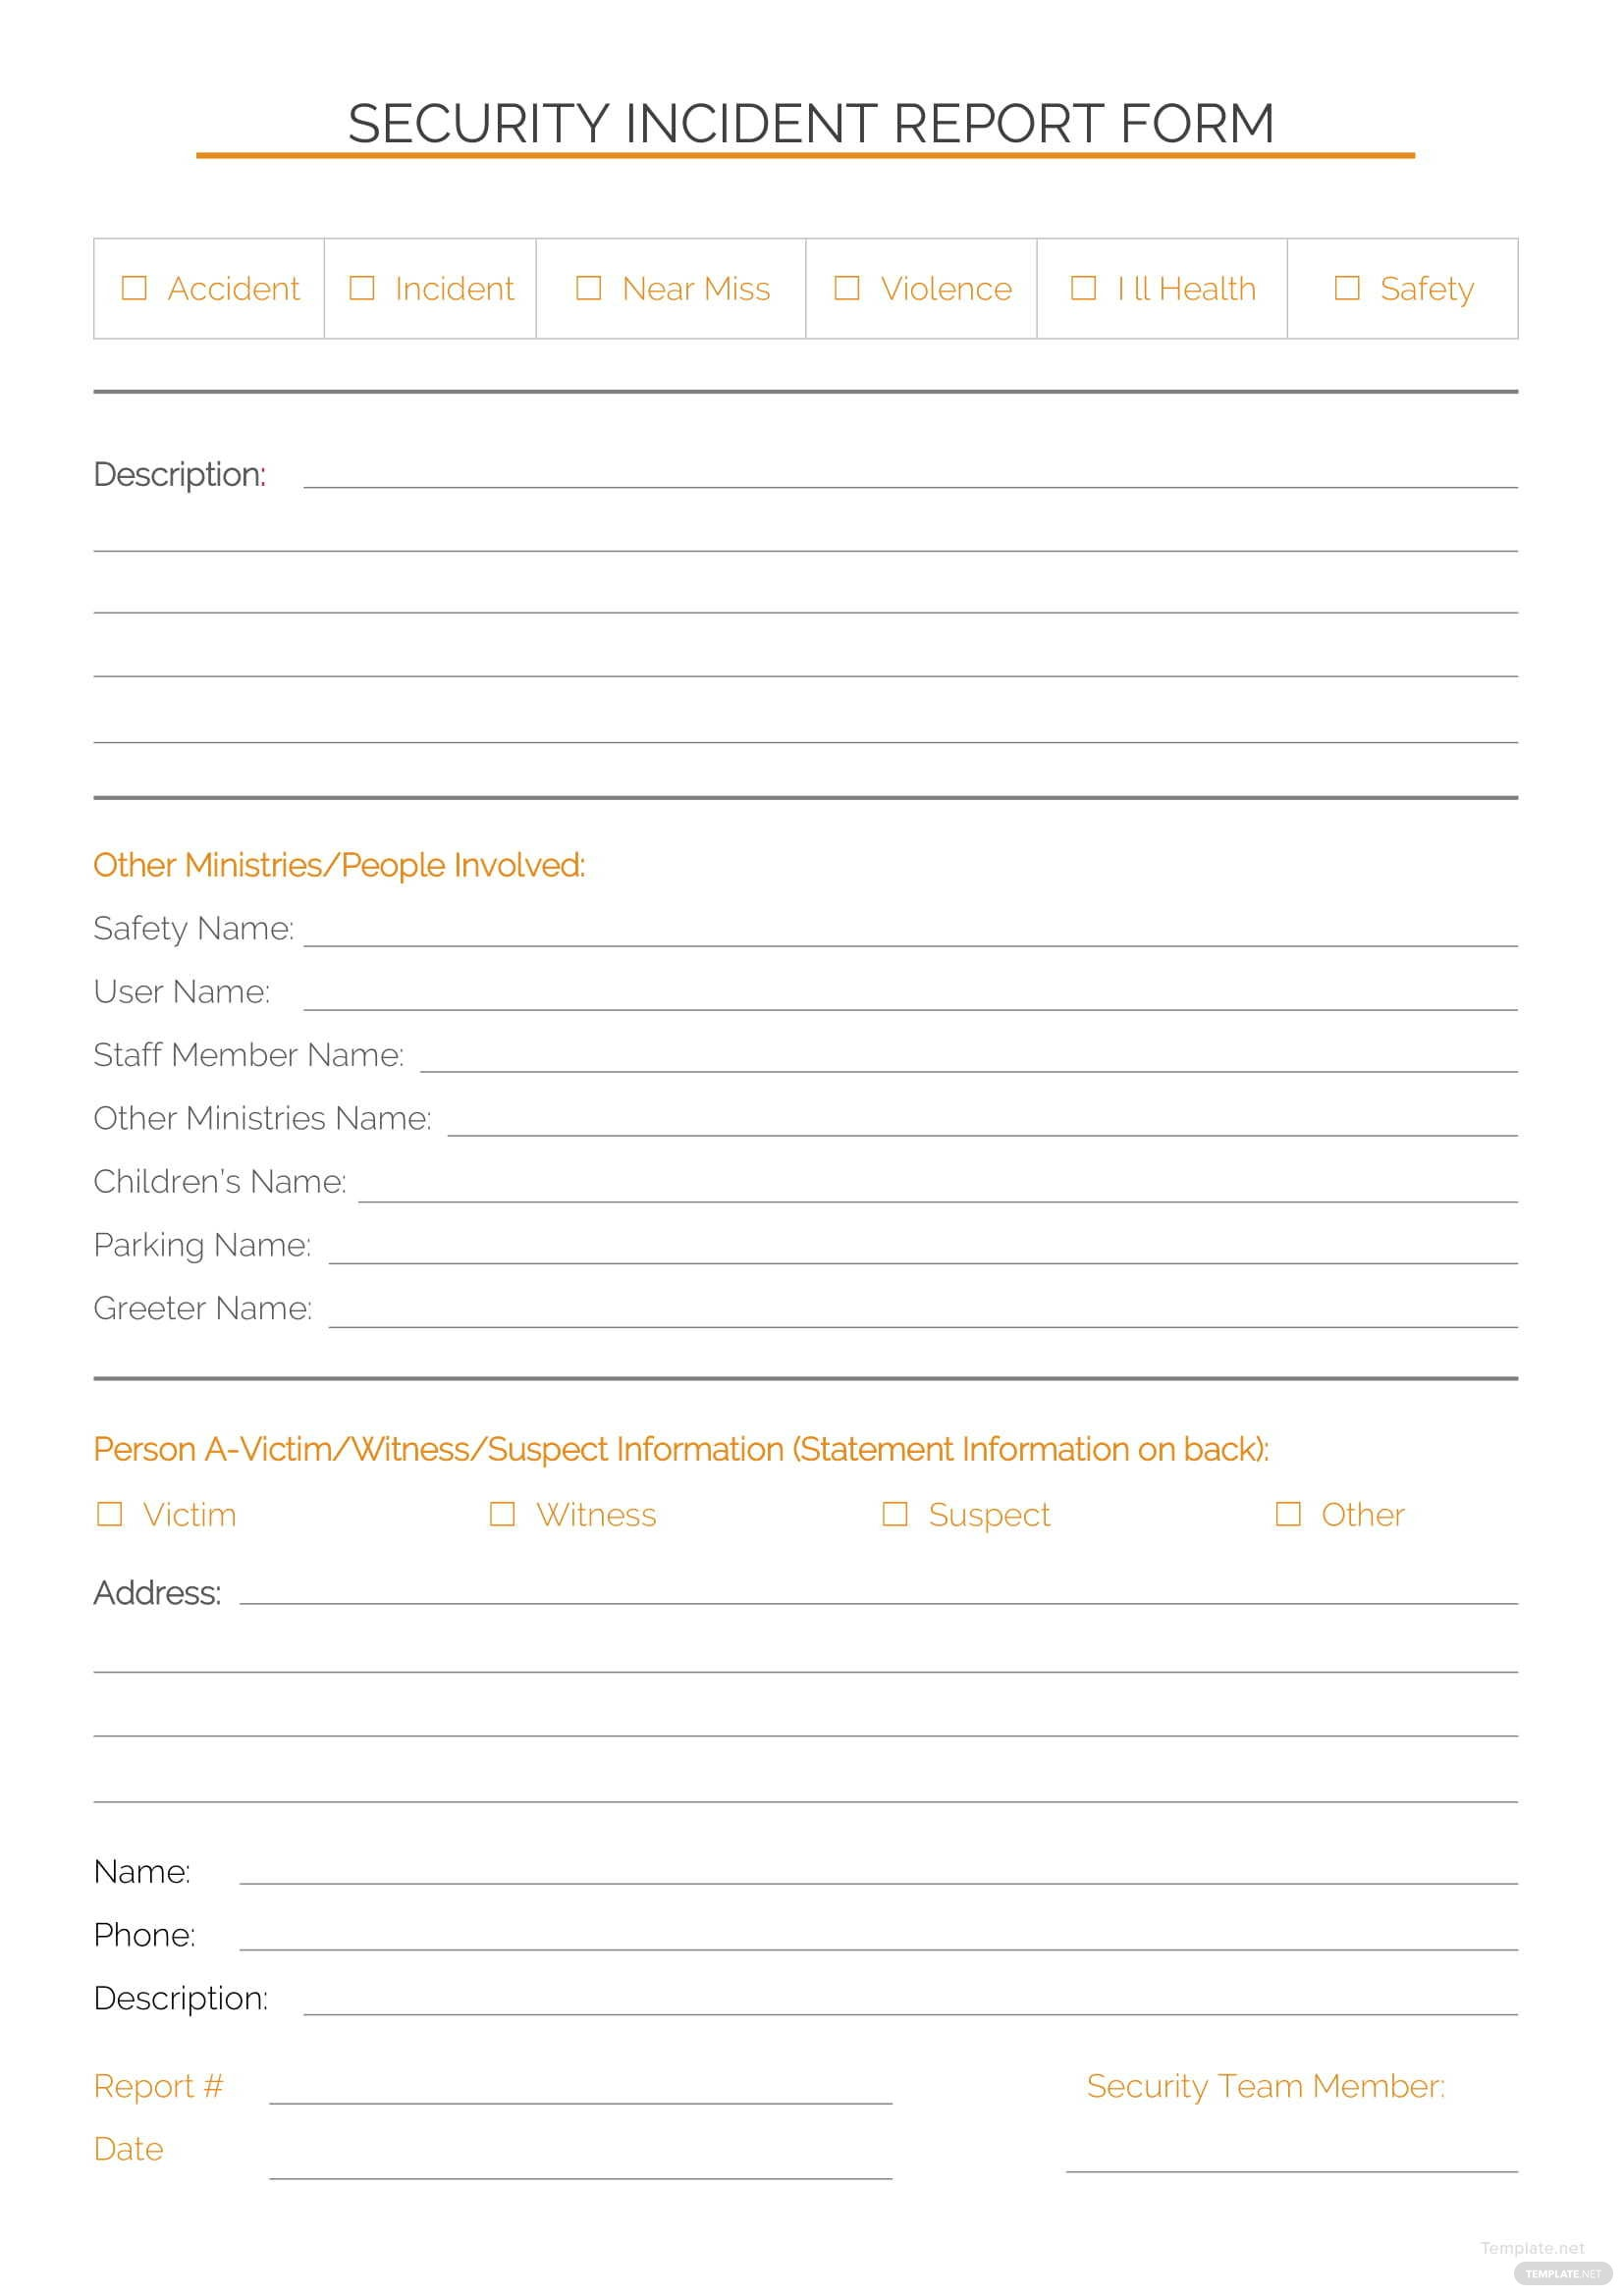 security-incident-report-template-1 Sample Business Expense Report Template on quicken income, yearly total, for reimbursement, healthcare revenue, business income, completed business,